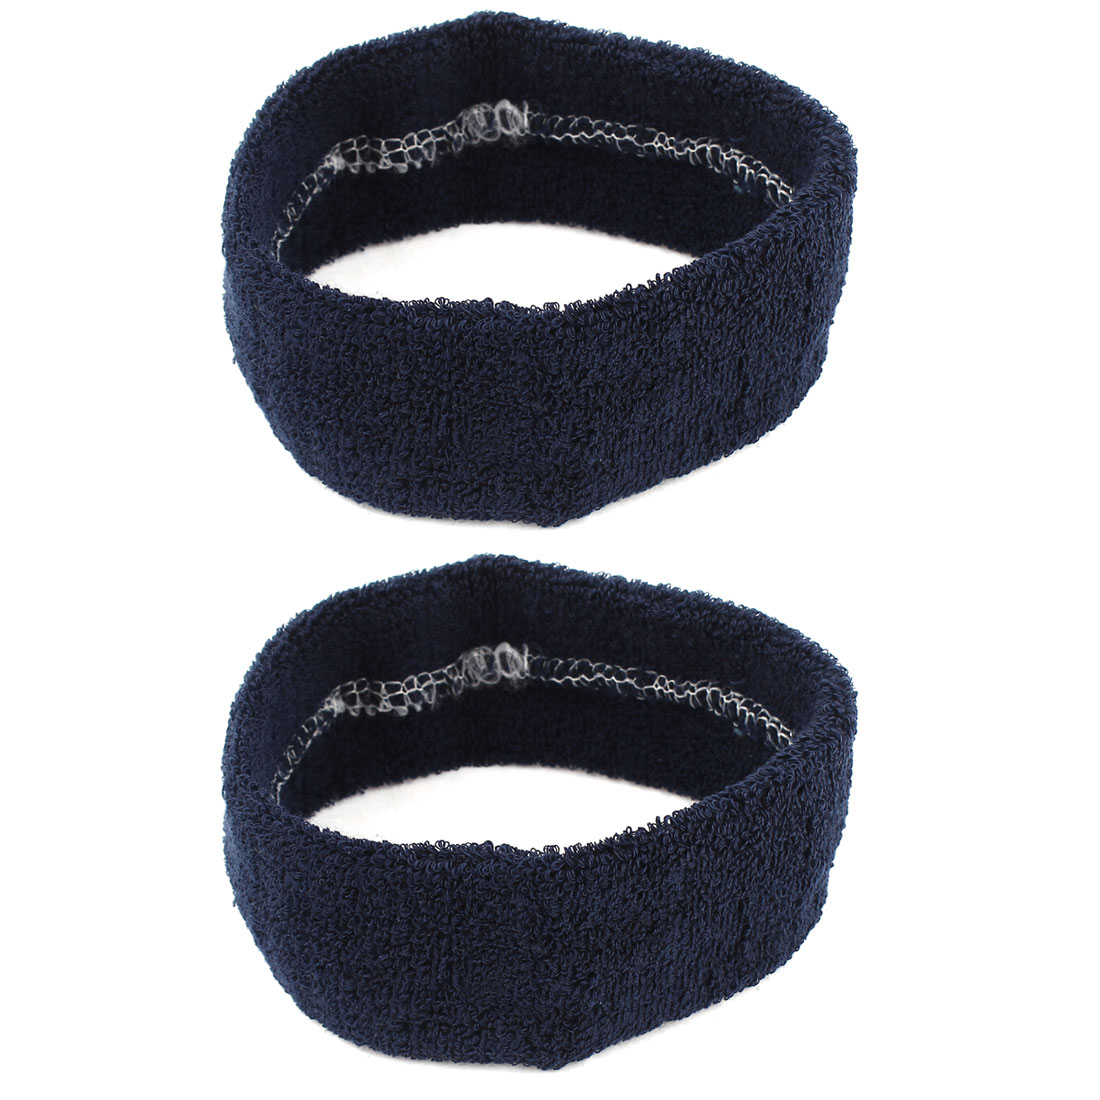 2 Pcs Dark Blue Sports Terry Fabric Elastic Strecthy Band Headbands